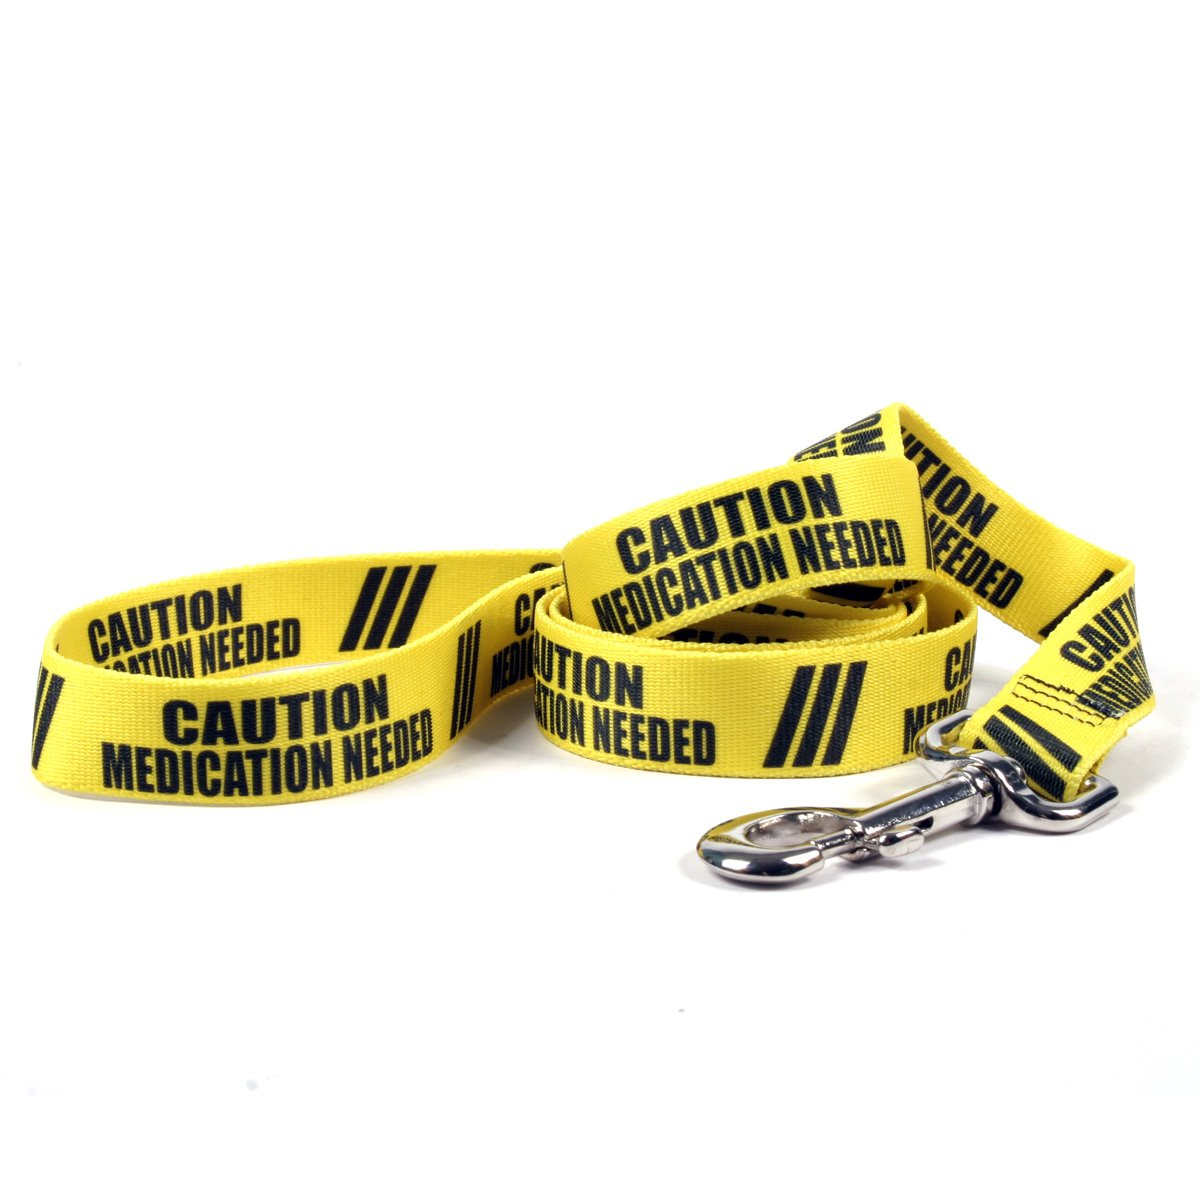 Yellow Dog Design Caution Medication Needed Dog Leash with Standard Loop Handle, 1'' Wide